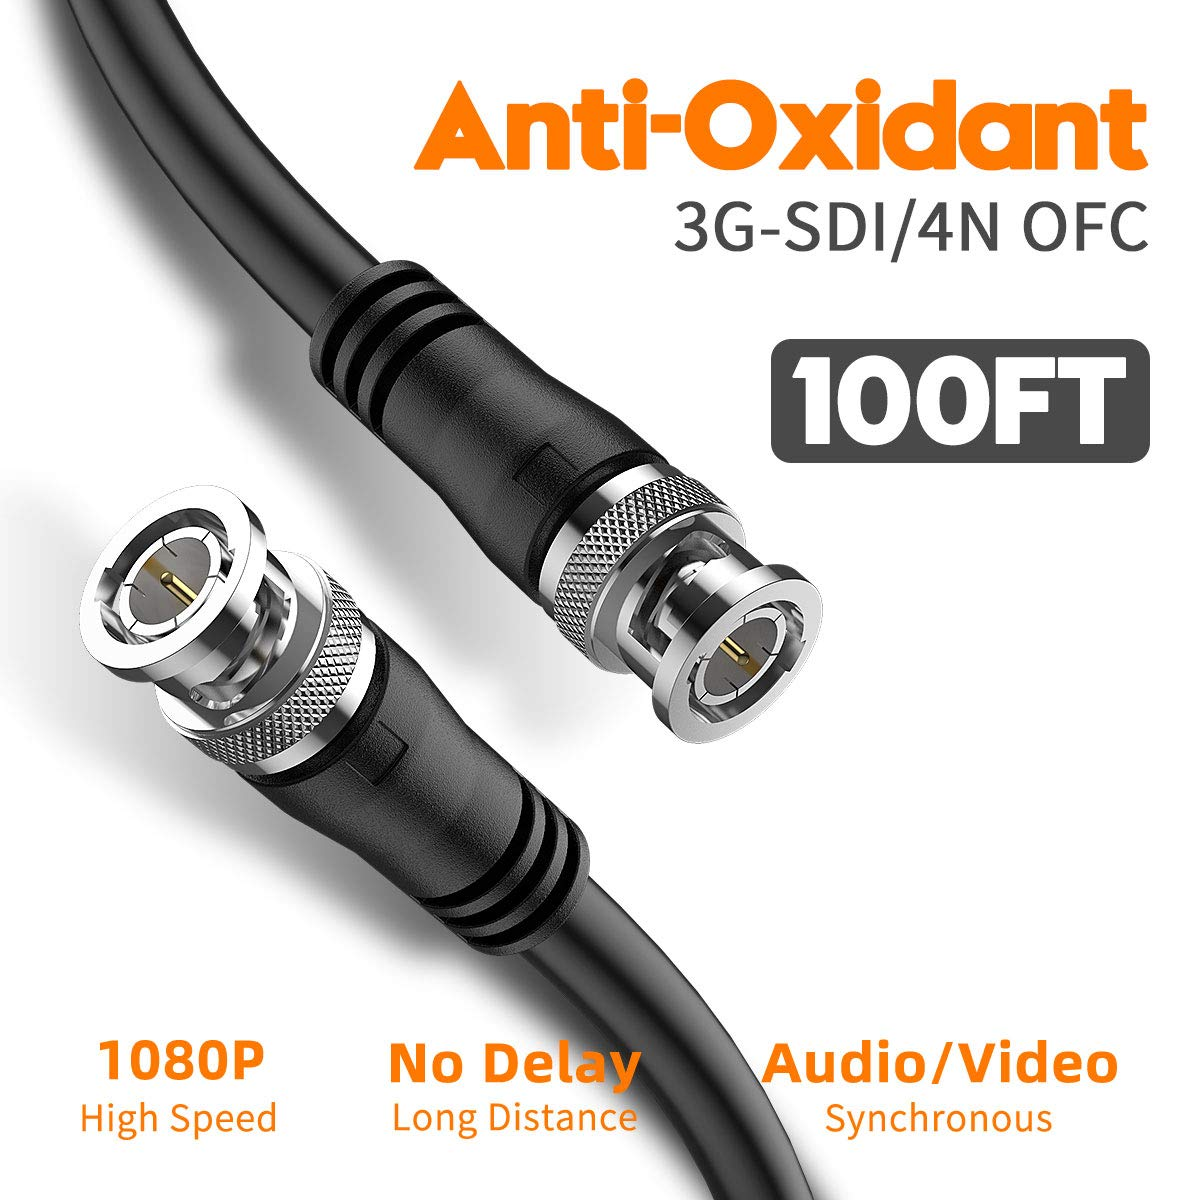 SDI Cable 100ft, BIFALE 3G HD-SDI Cable, Heavy Duty BNC to BNC Cable 75 Ohm, 1080P for Video Security Camera CCTV Systems Video Coaxial Cable by BIFALE